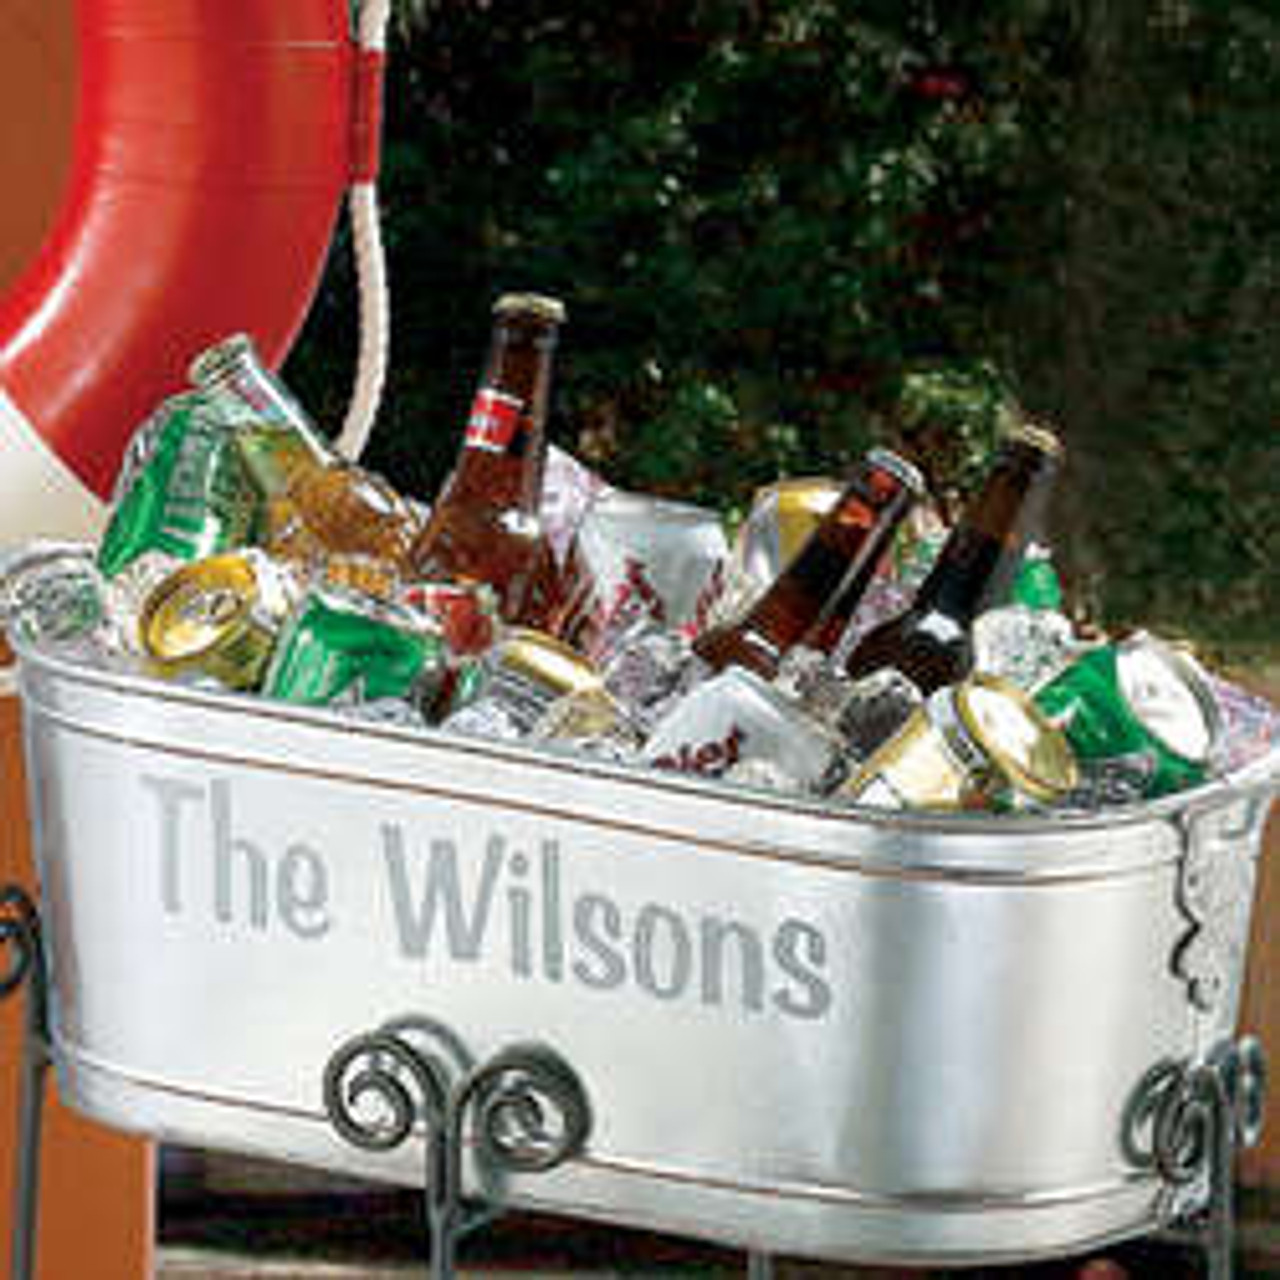 Custom, Personalized, Ice, Beer, Tub, Bucket, Bar, Wedding, Ice-Bucket, Beer Tub, Bar Back,branded, imprinted